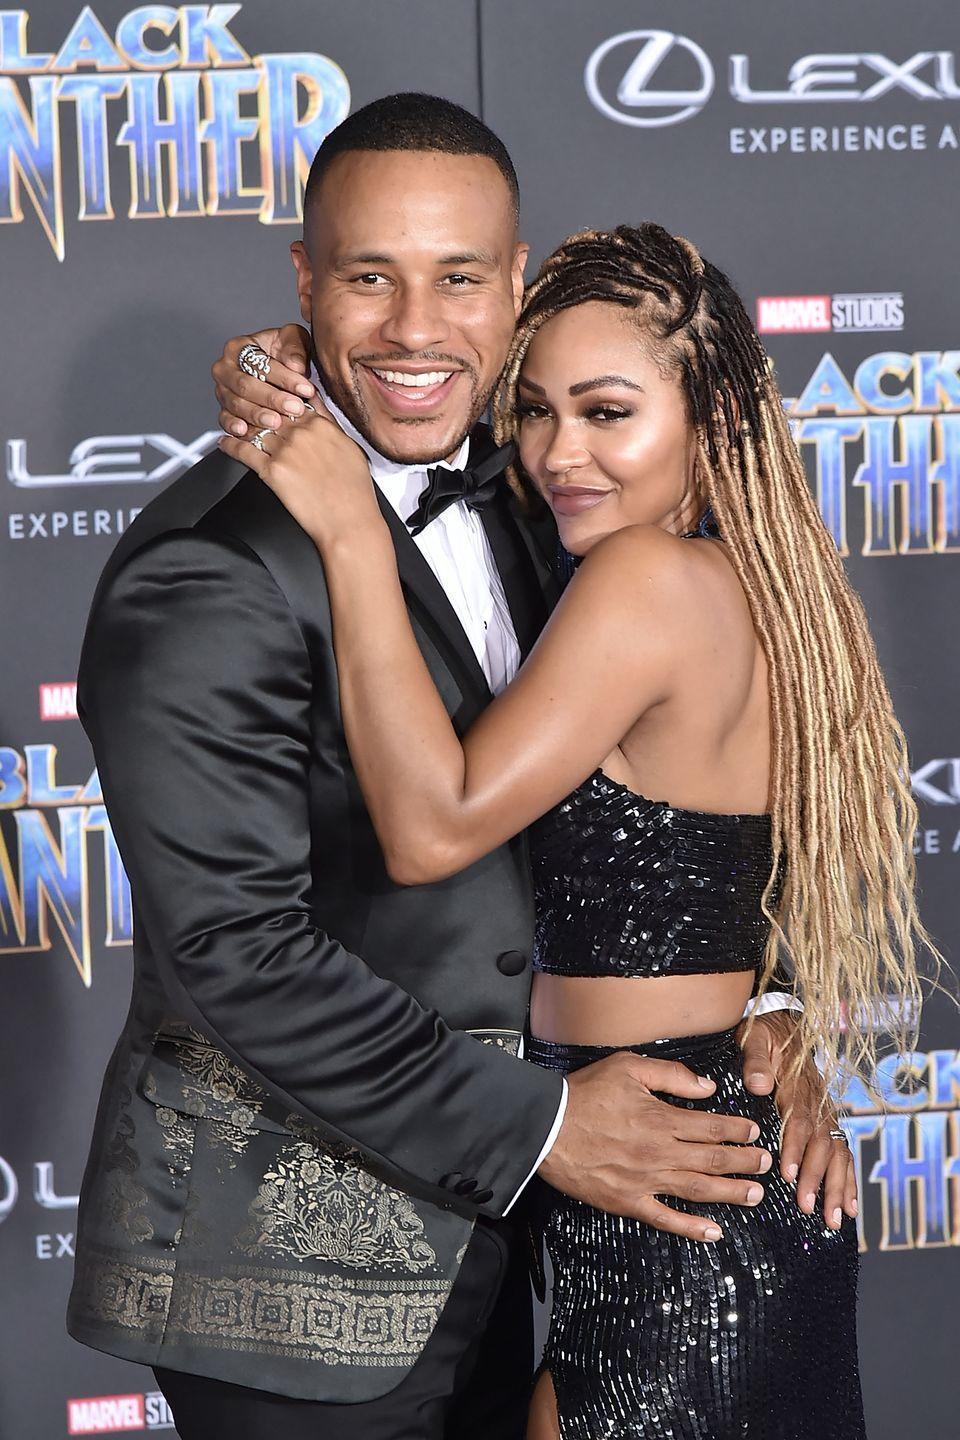 """<p>The actress and her preacher/film executive husband were so dedicated to the idea that you should wait until marriage to be intimate, they wrote a book about it. """"As a man, if you can be disciplined in your sexual life, there's nothing you can't do,"""" DeVon <a href=""""https://twitter.com/devonfranklin/status/725430087915569152"""" rel=""""nofollow noopener"""" target=""""_blank"""" data-ylk=""""slk:said in the book"""" class=""""link rapid-noclick-resp"""">said in the book</a>.</p><p>In an interview with <em><a href=""""https://www.essence.com/2012/11/01/exclusive-devon-franklin-10-years-celibacy-marriage"""" rel=""""nofollow noopener"""" target=""""_blank"""" data-ylk=""""slk:Essence"""" class=""""link rapid-noclick-resp"""">Essence</a></em>, he said, """"We held each other accountable because we honored the commitment.""""</p>"""